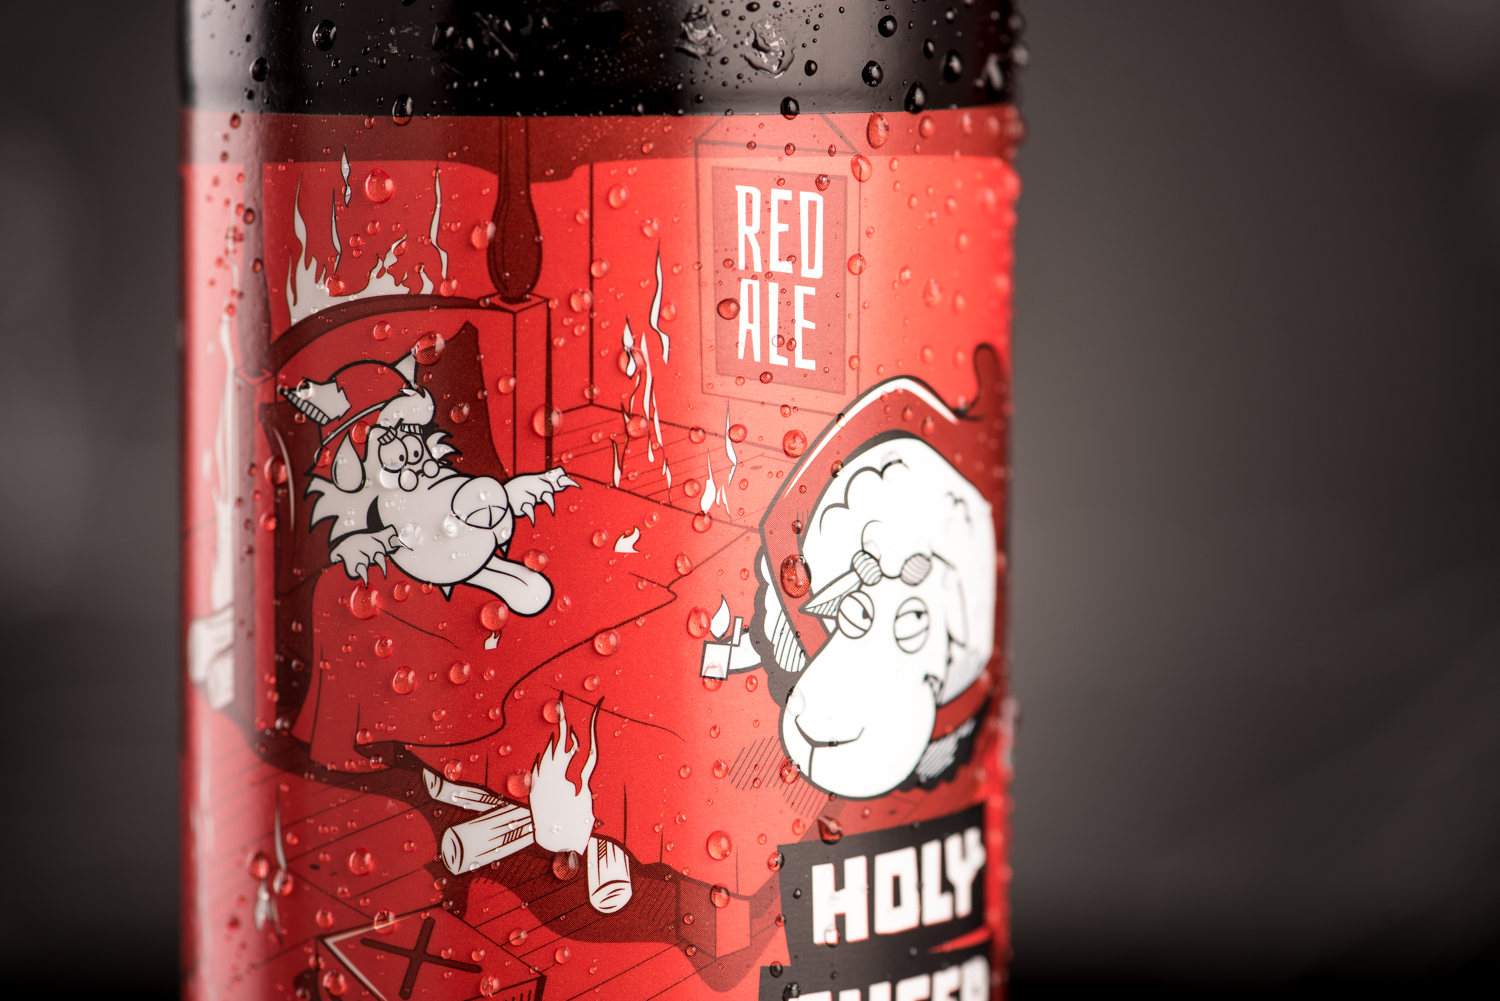 cerveja-artesanal-holy-sheep-rotulo-red-ale